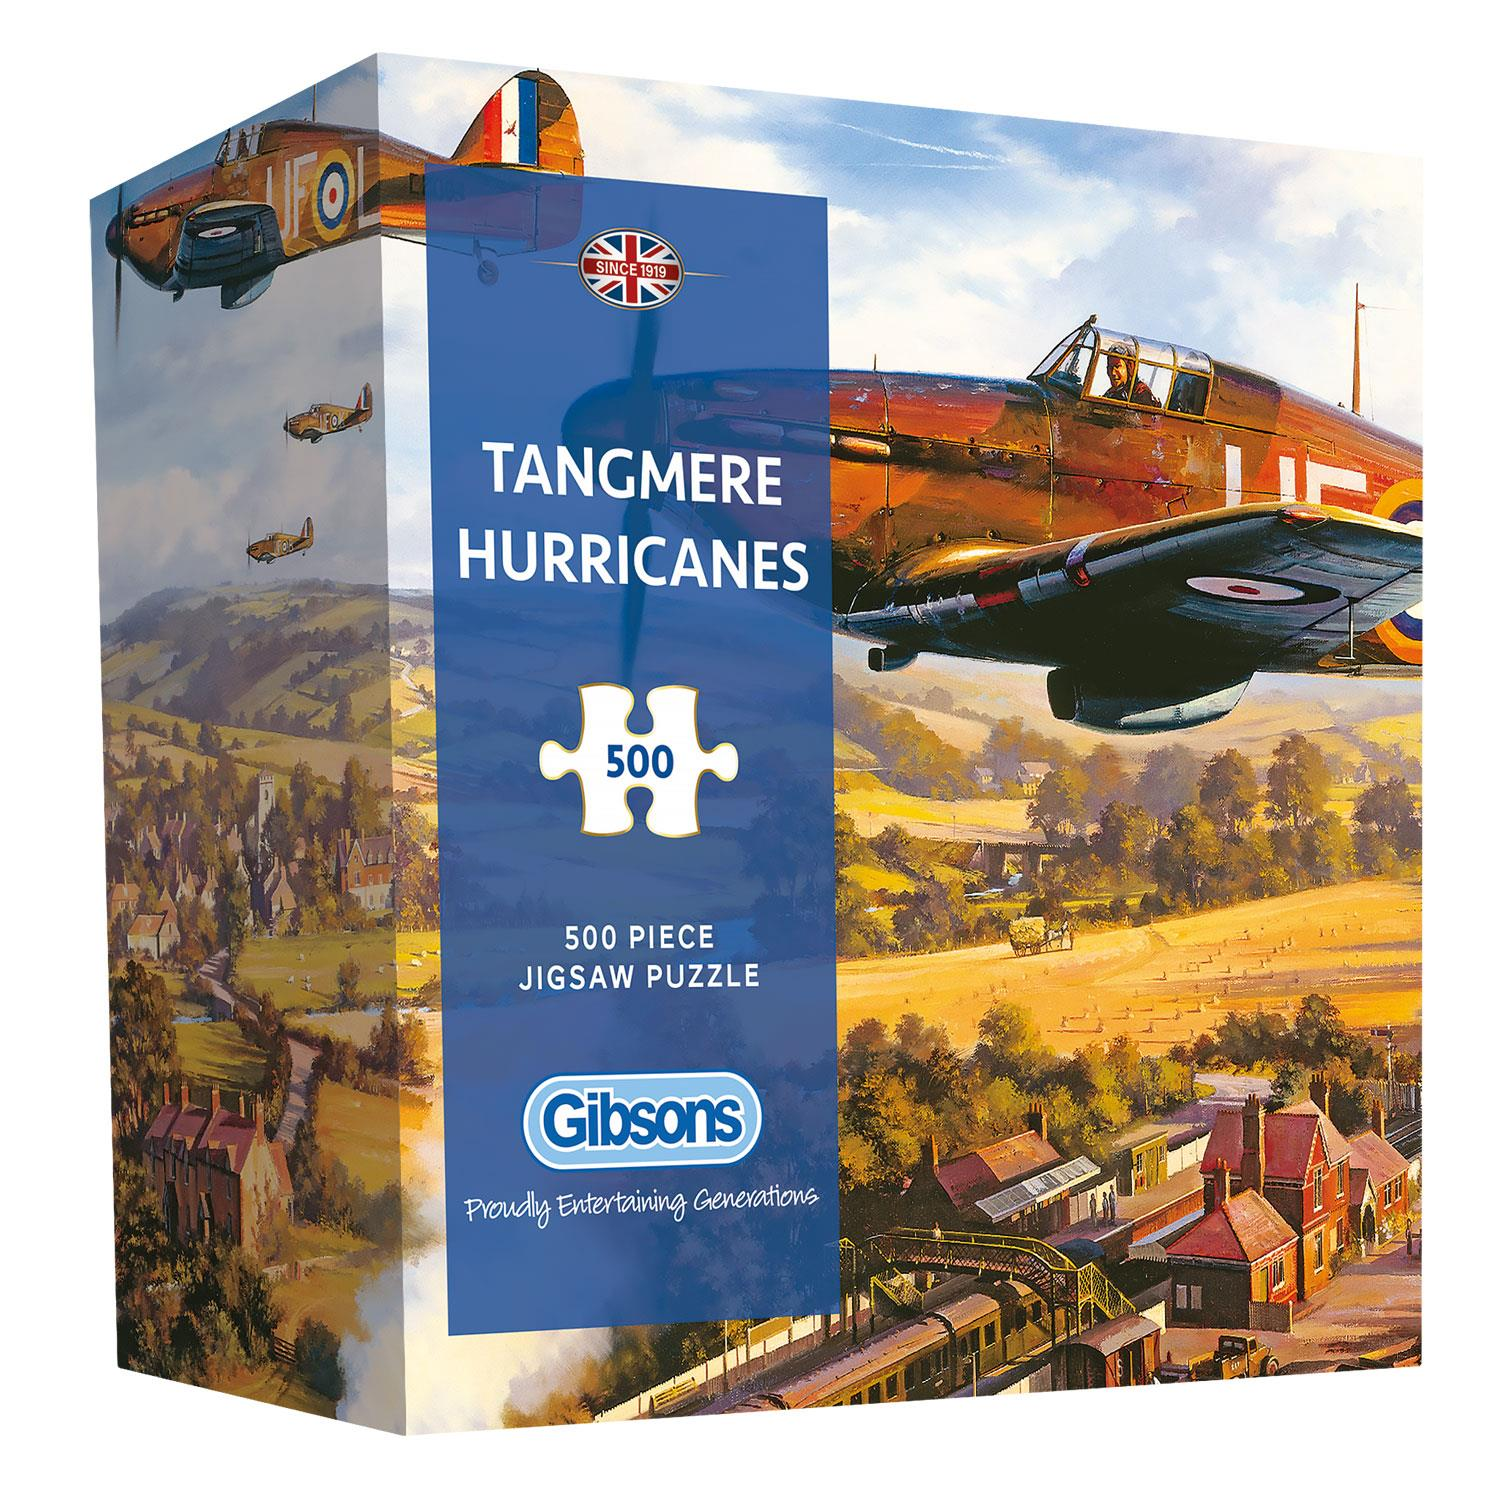 Gibsons Tangmere Hurricanes Jigsaw Puzzle in Gift Box  (500 Pieces)